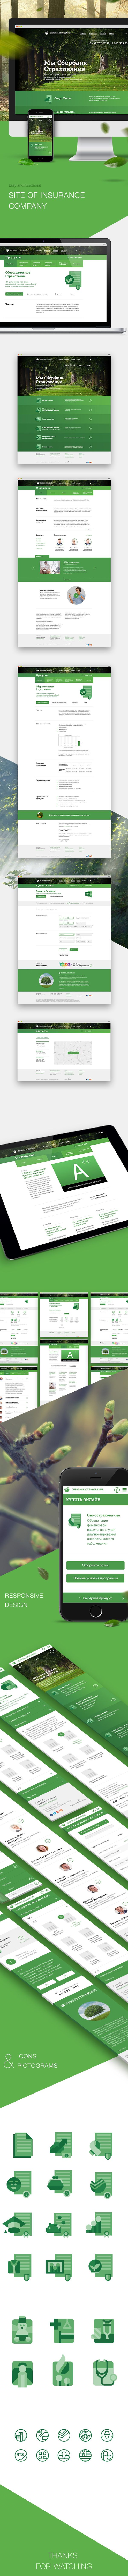 Sberbank insurance on Web Design Served